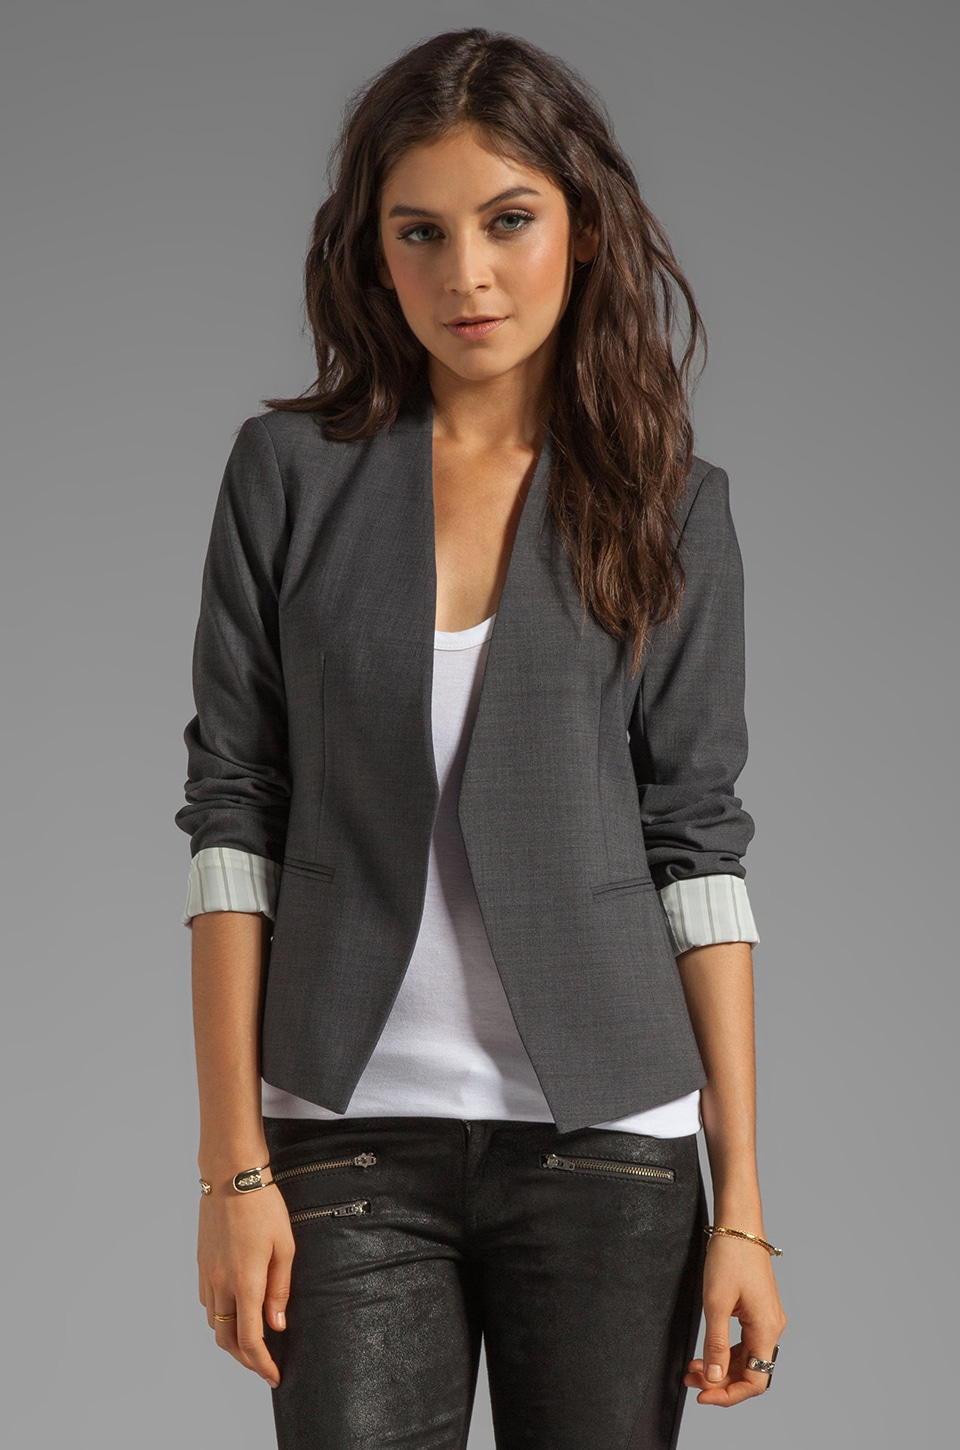 Theory Lanai Blazer in Charcoal